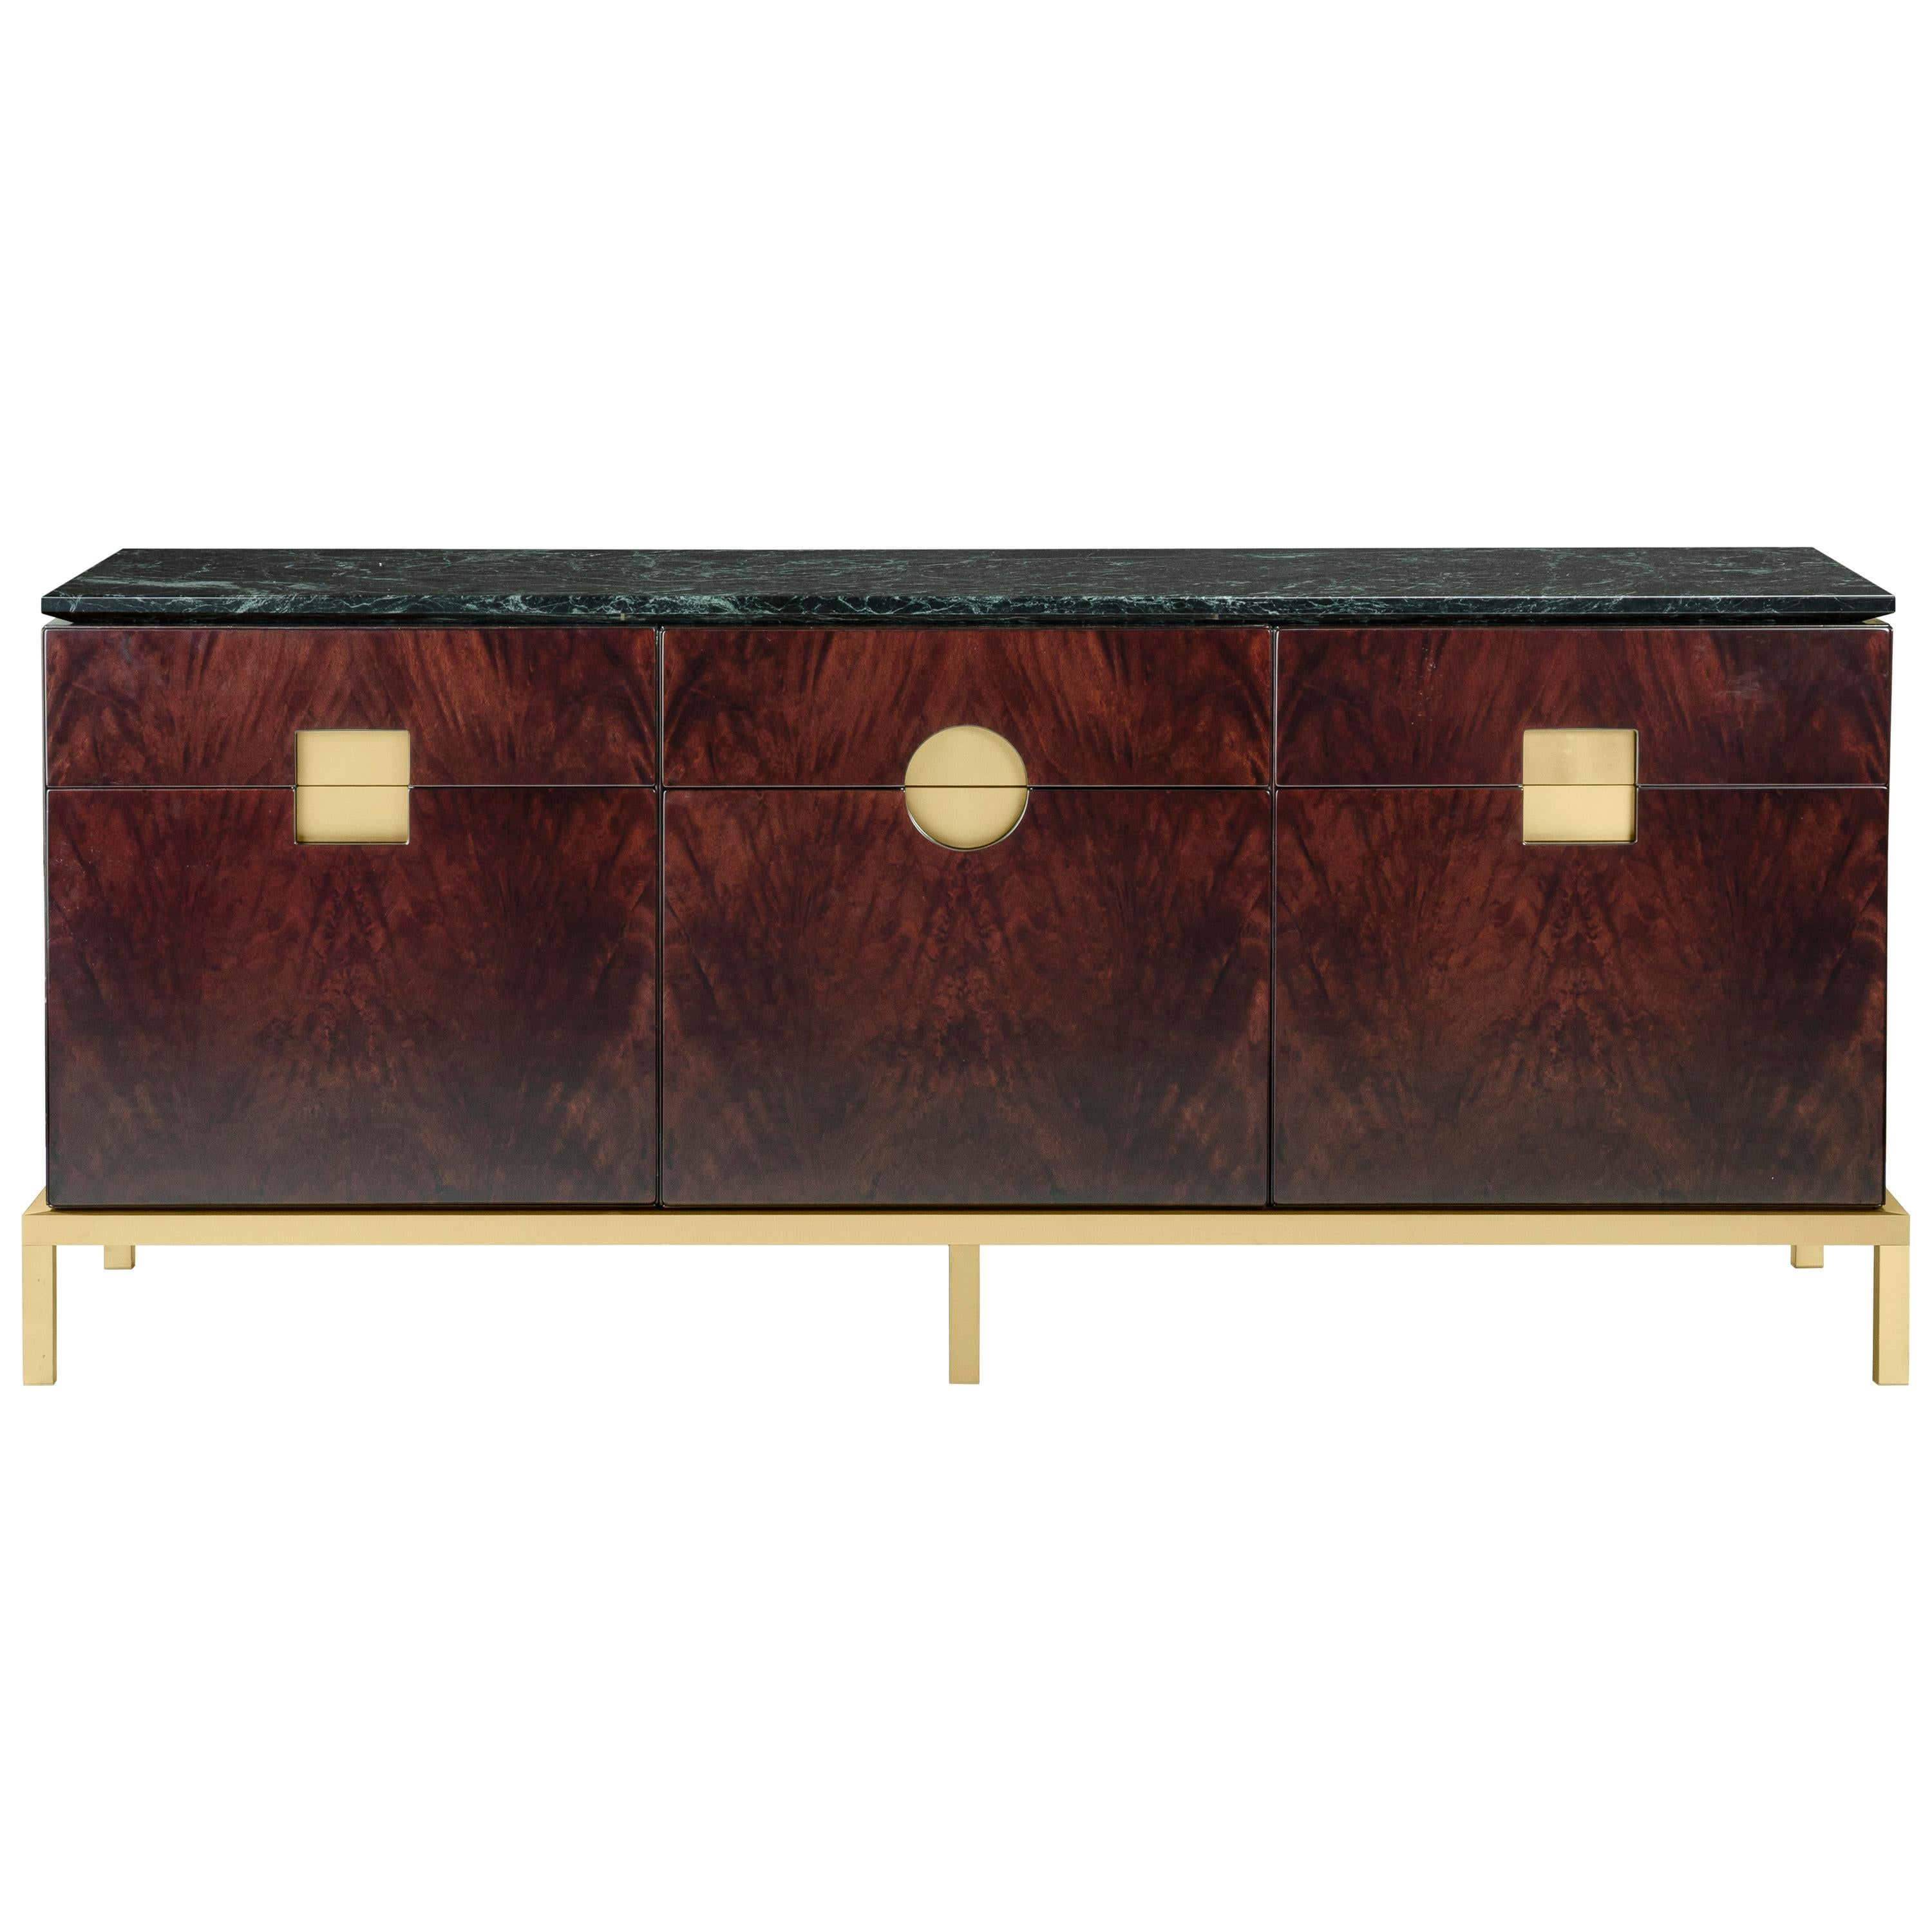 Ghidini 1961 Zuan Dining Cabinet in Wood by Paolo Rizzatto